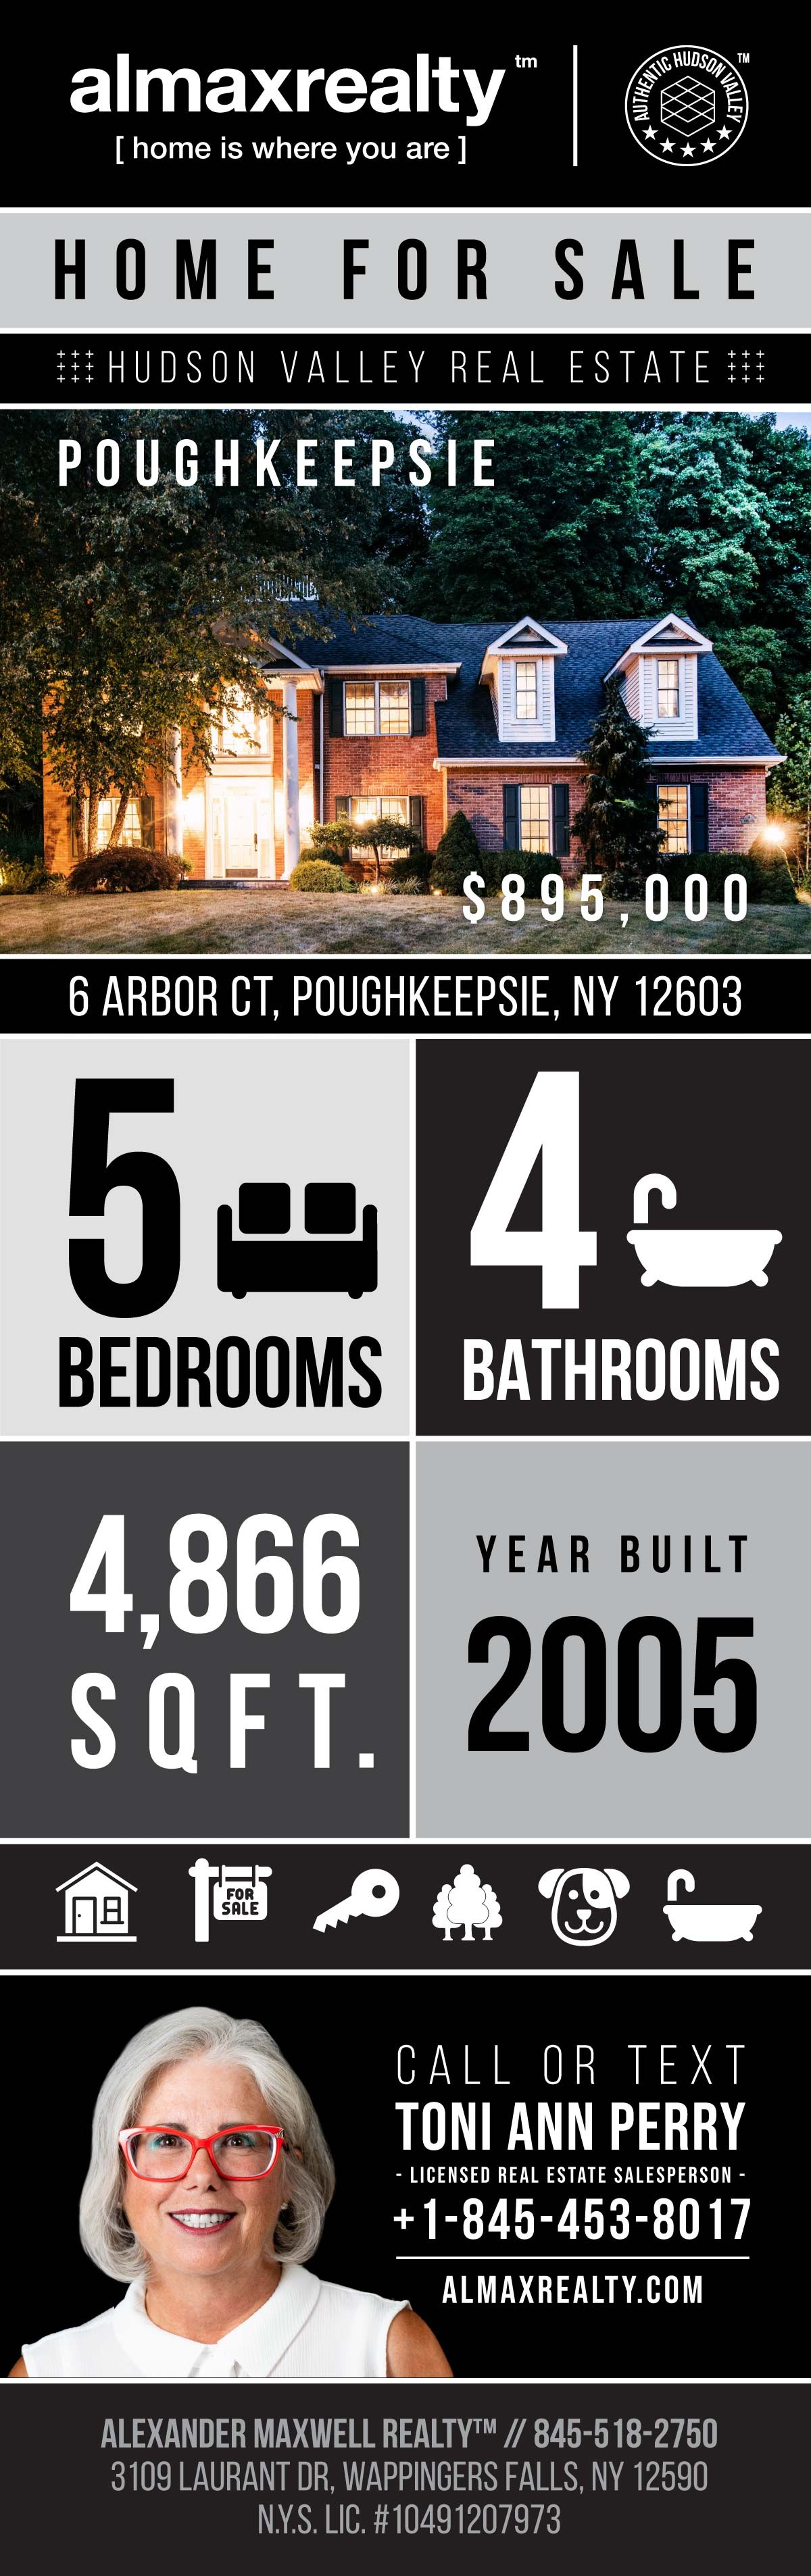 Infographic – Home for Sale in Hudson Valley NY